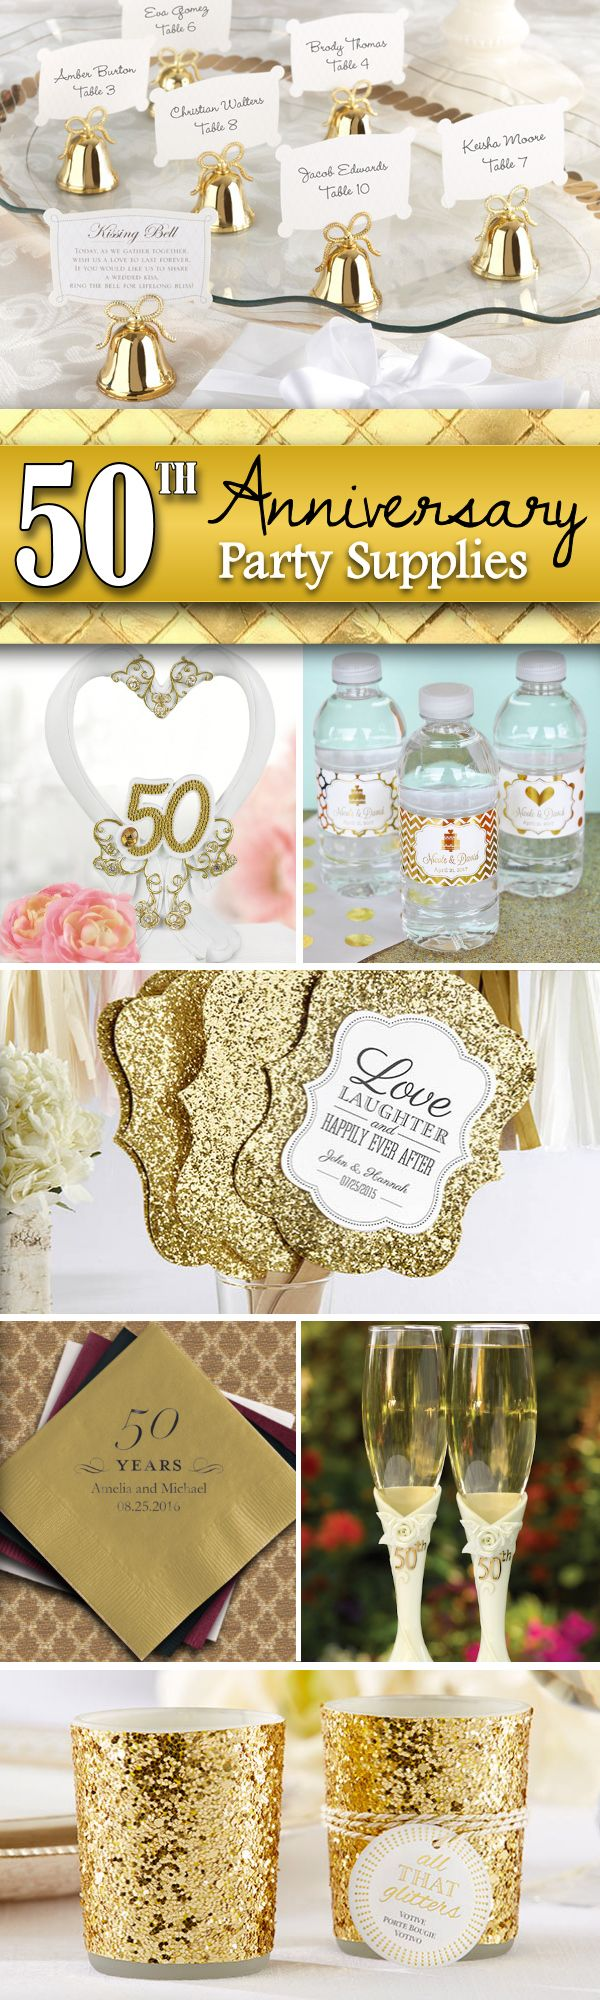 Throwing a 50th Wedding Anniversary Party?  Get all the supplies for a golden anniversary bash that your guests won't soon forget.  Find favors, champagne flutes, decorations, tableware and more.....